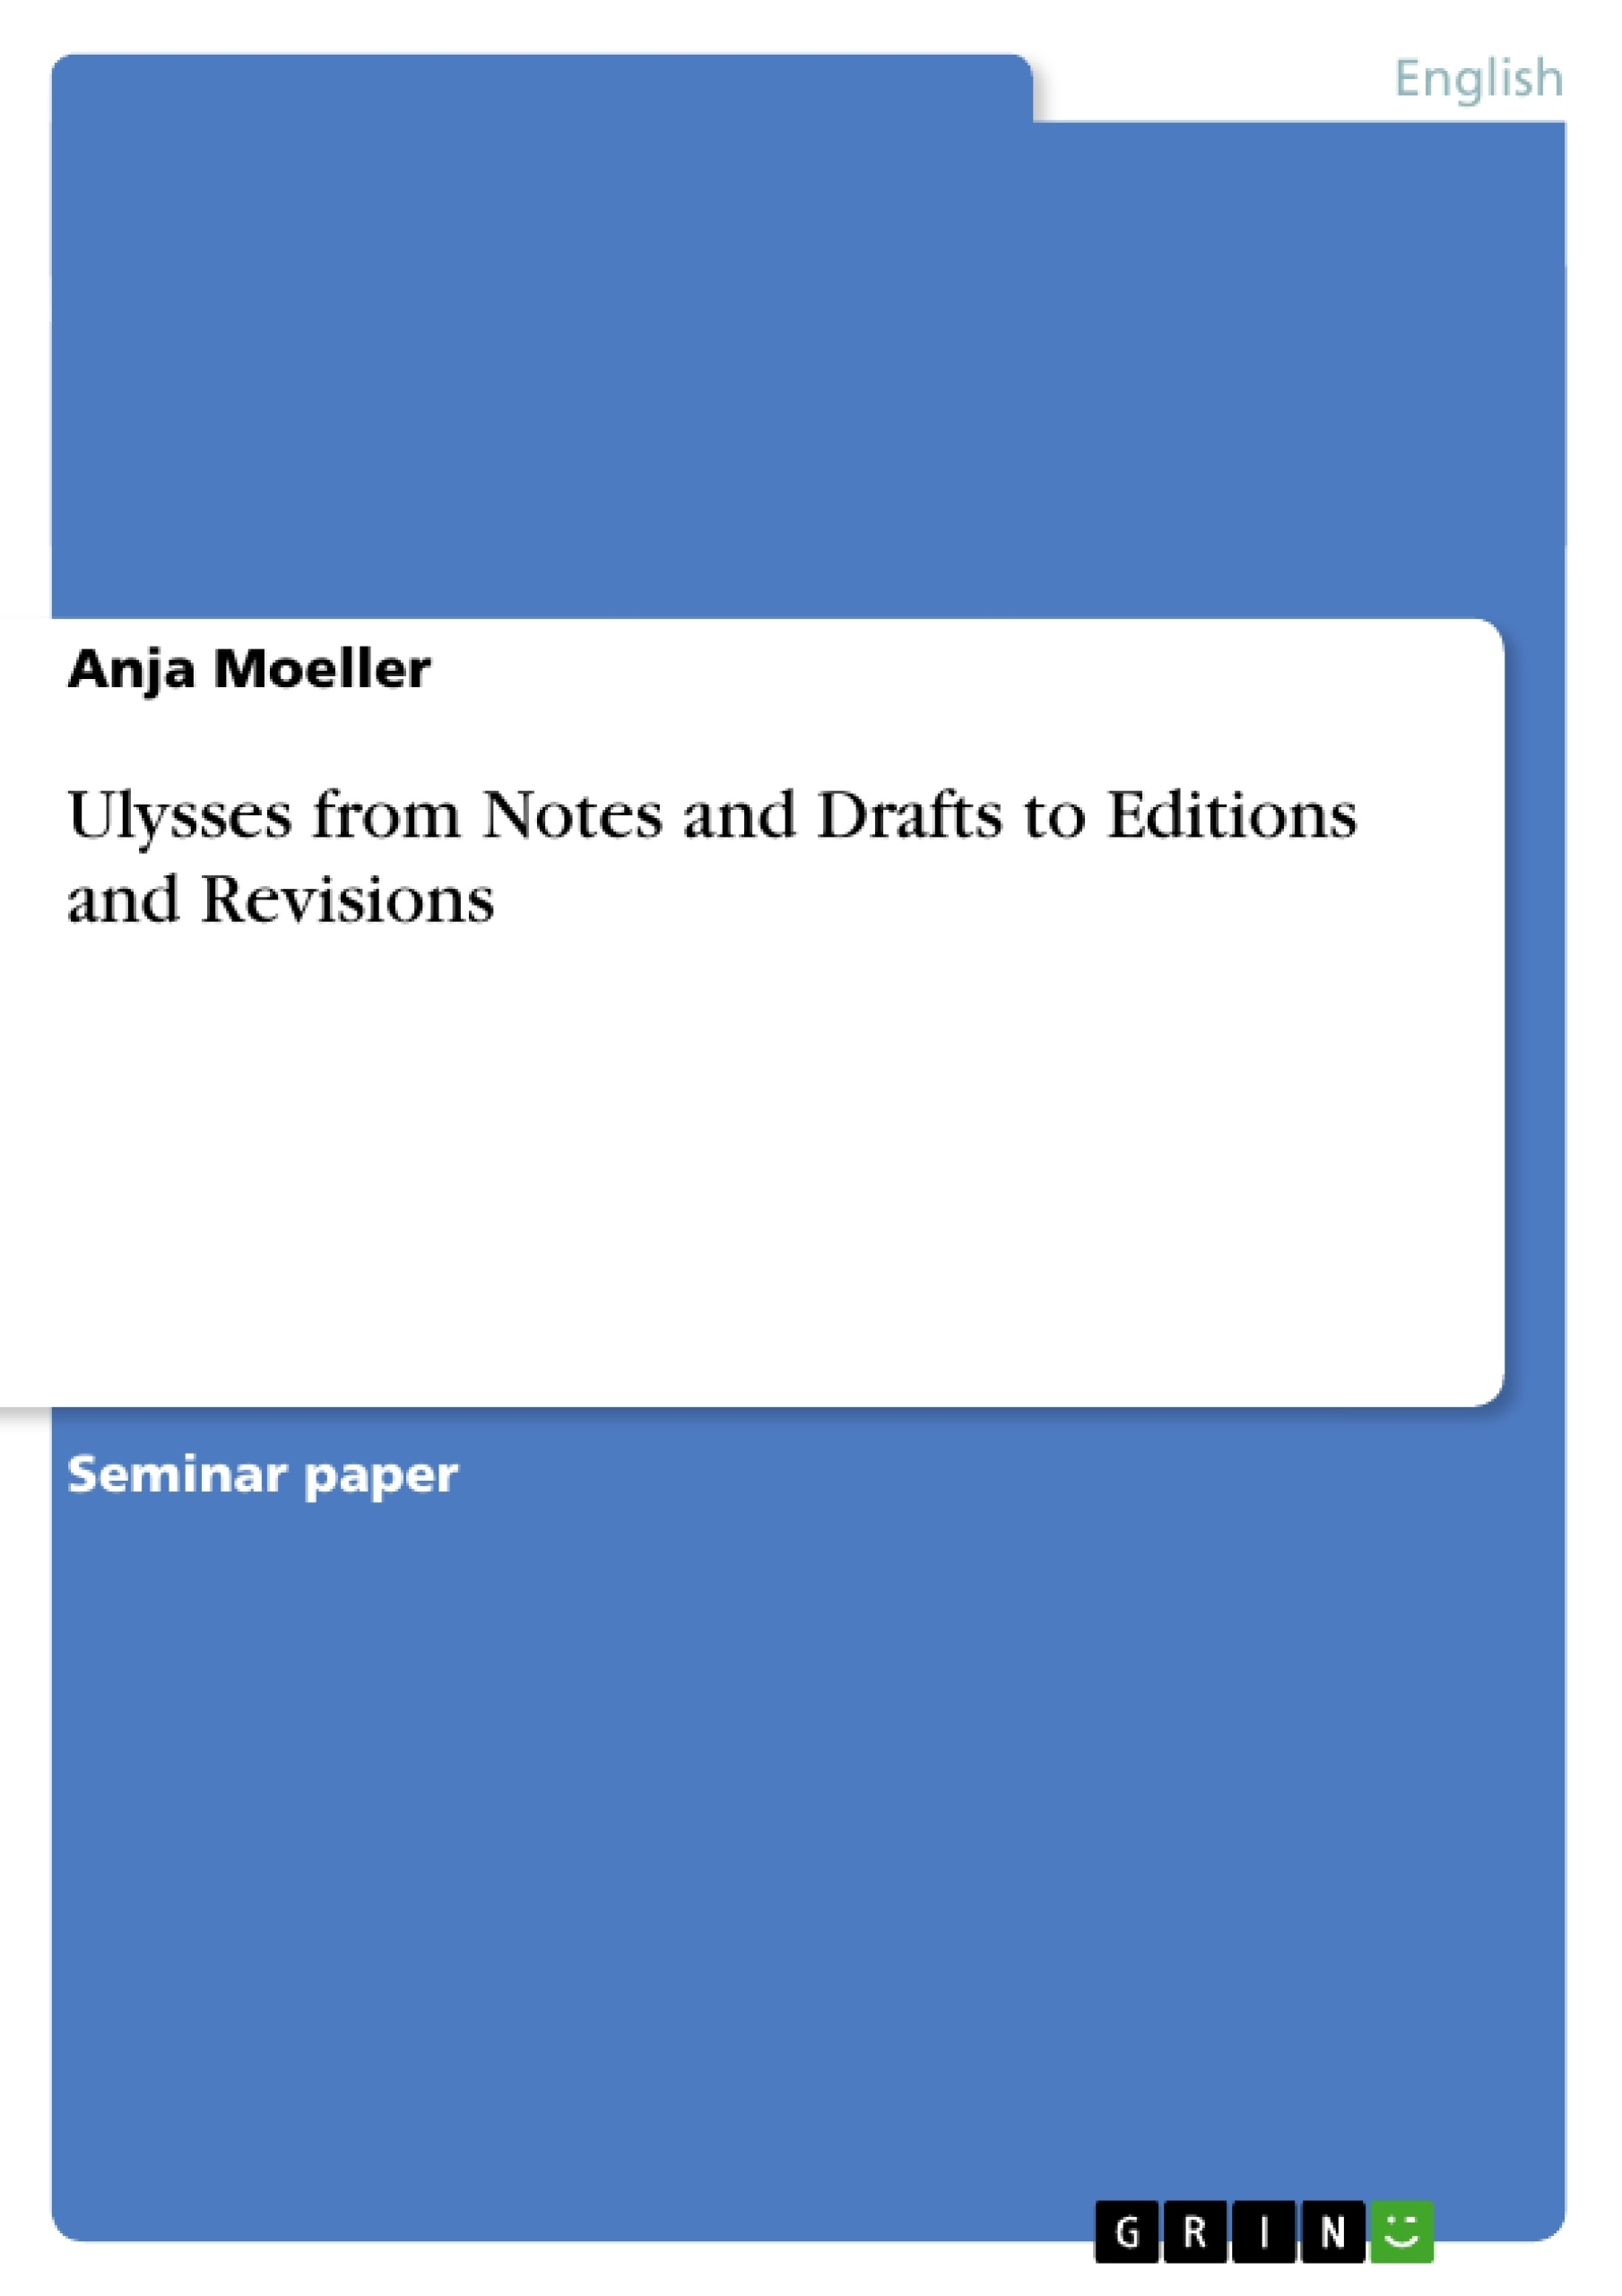 Title: Ulysses from Notes and Drafts to  Editions and Revisions